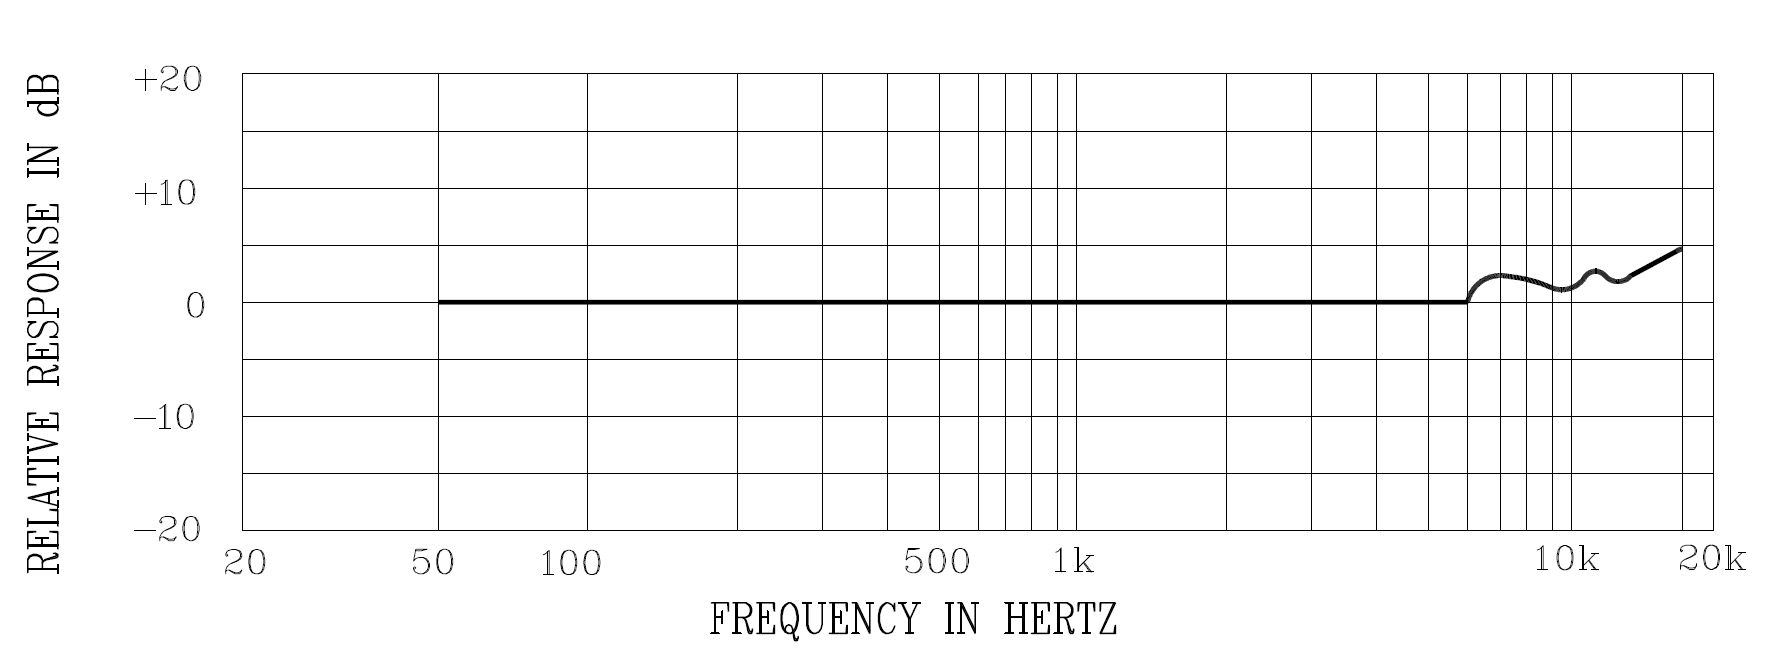 frequency VT910DC